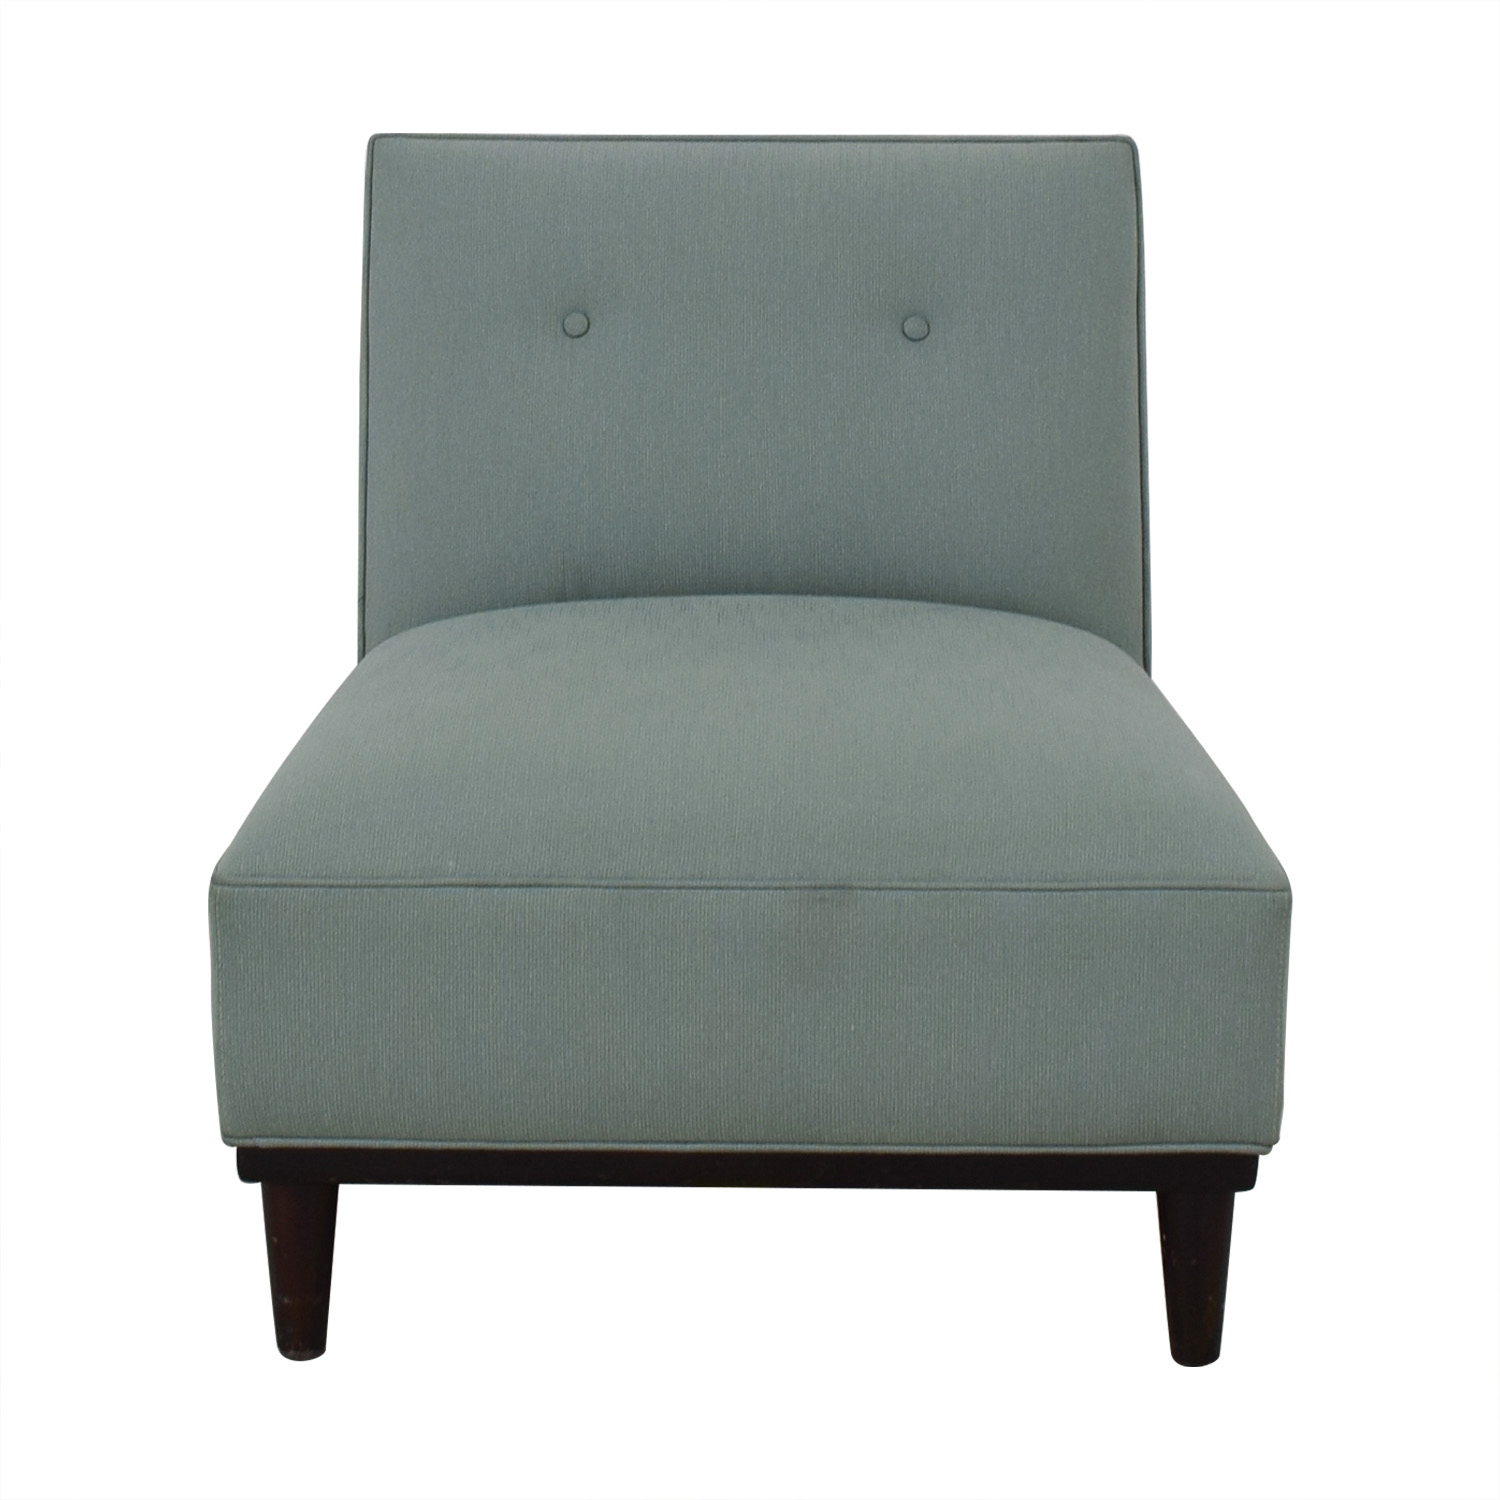 buy Room & Board Armless Chair Room & Board Accent Chairs